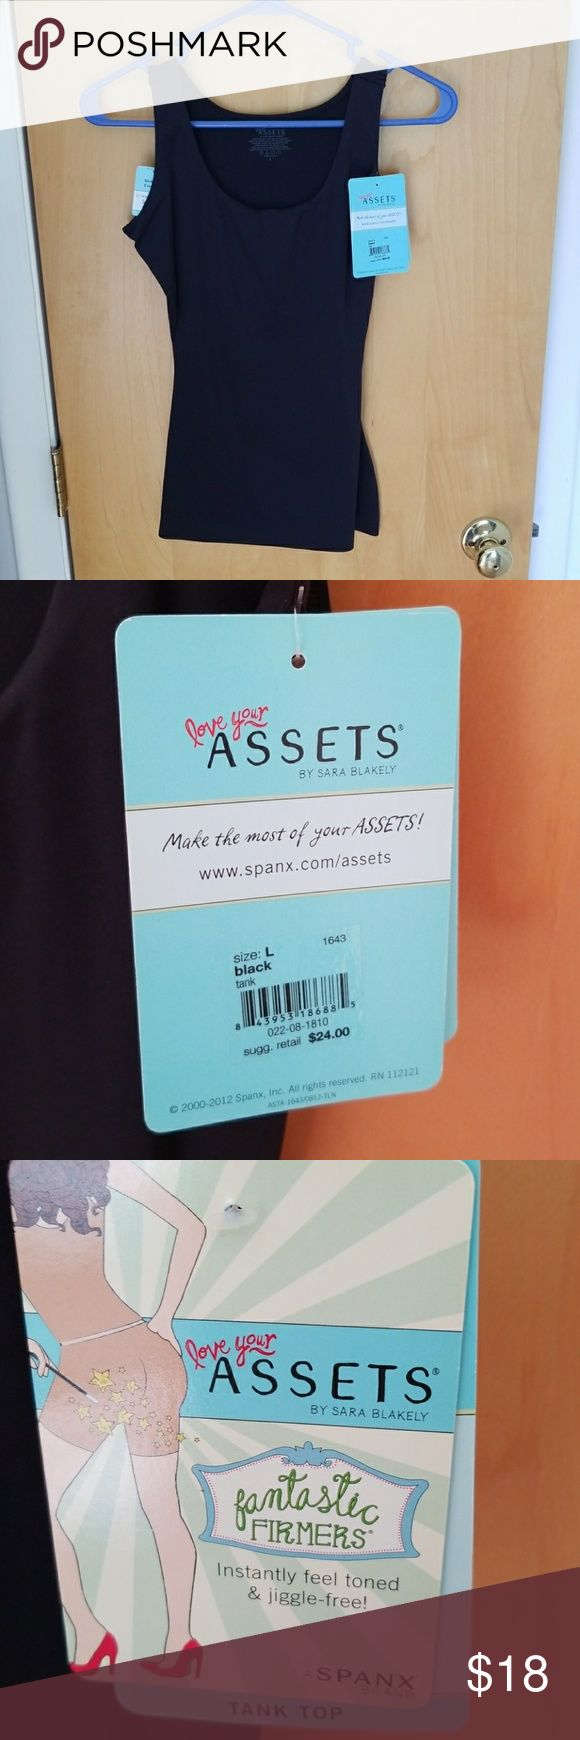 Assets by Sarah Blakely Tank Top Fantastic firming tank top. Size L. Never worn. New with tags. Instantly feel toned and jiggle free. Non compression bust fabric keeps your chest at best. Mesh tummy panel comfortably slims. Matte fabric Assets By Spanx Tops Tank Tops